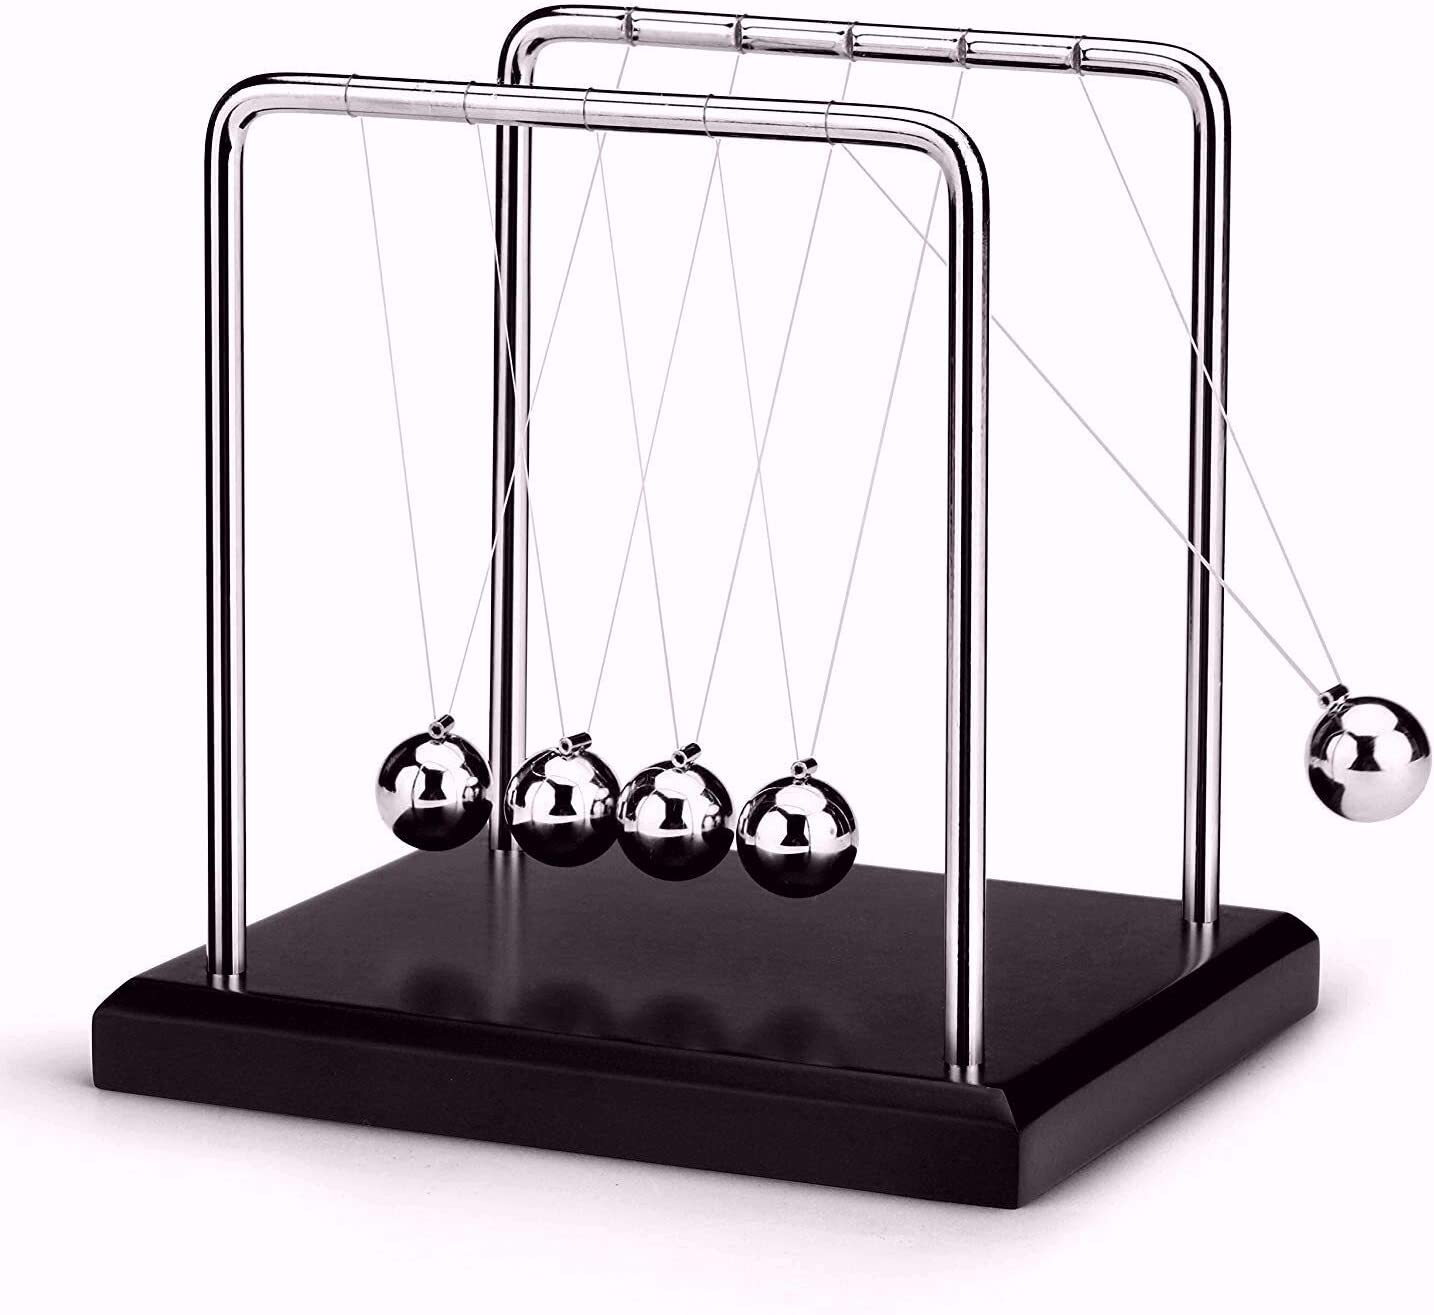 LtytyJ Newton's Cradle - Demonstrate Newton's Laws with Swinging Balls Physics Science Office Desk Decoration (Classic)